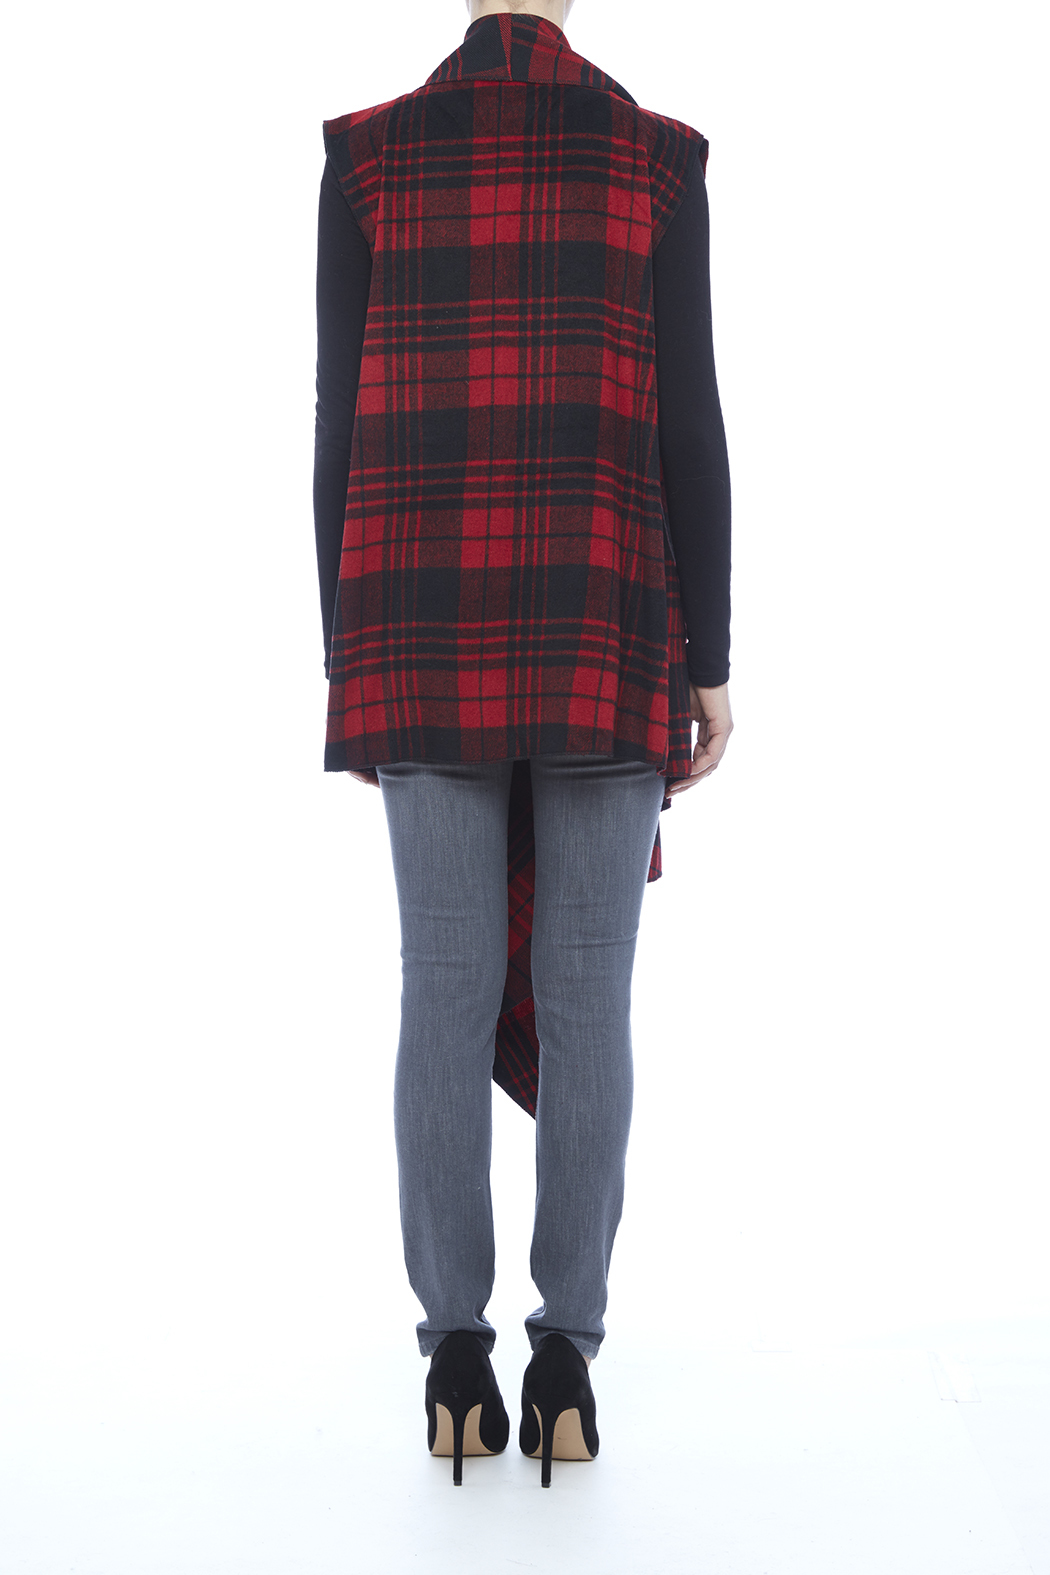 Renee C. Red Plaid Vest - Back Cropped Image